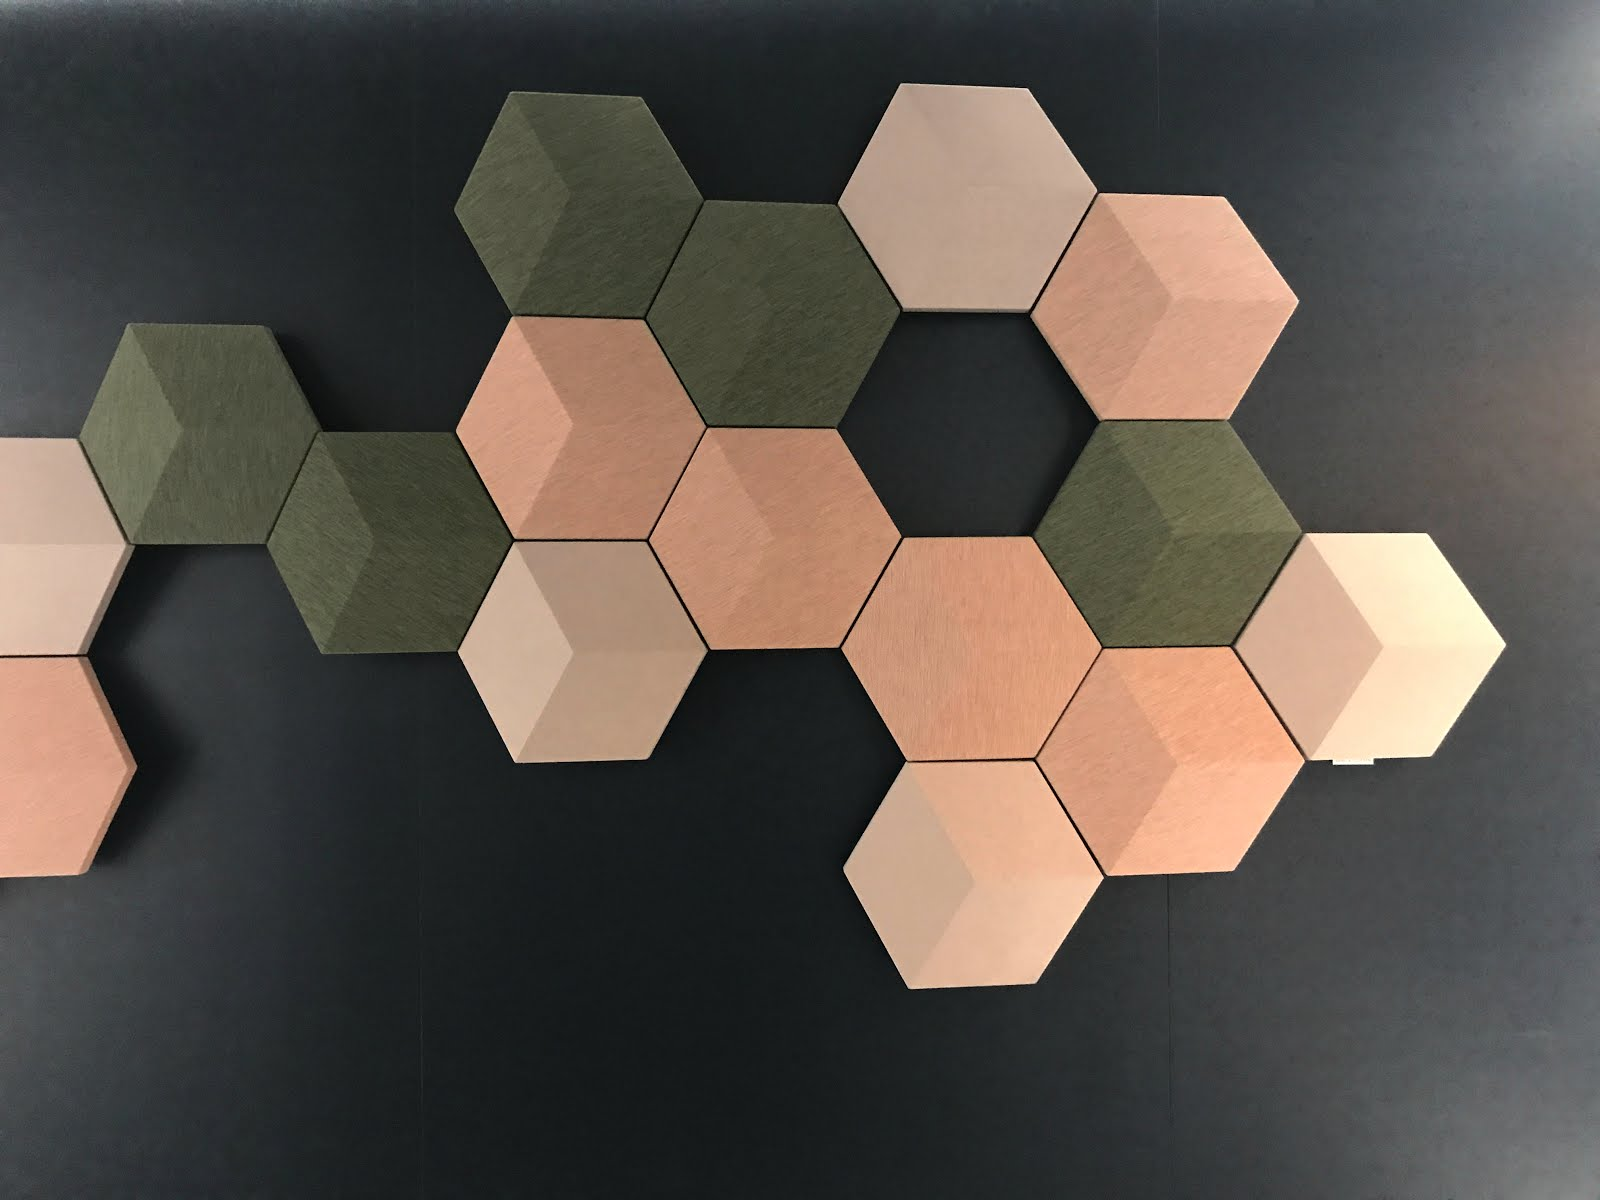 Bang & Olufsen, design blogger, wall tiles, acoustic tiles, Kvadrat